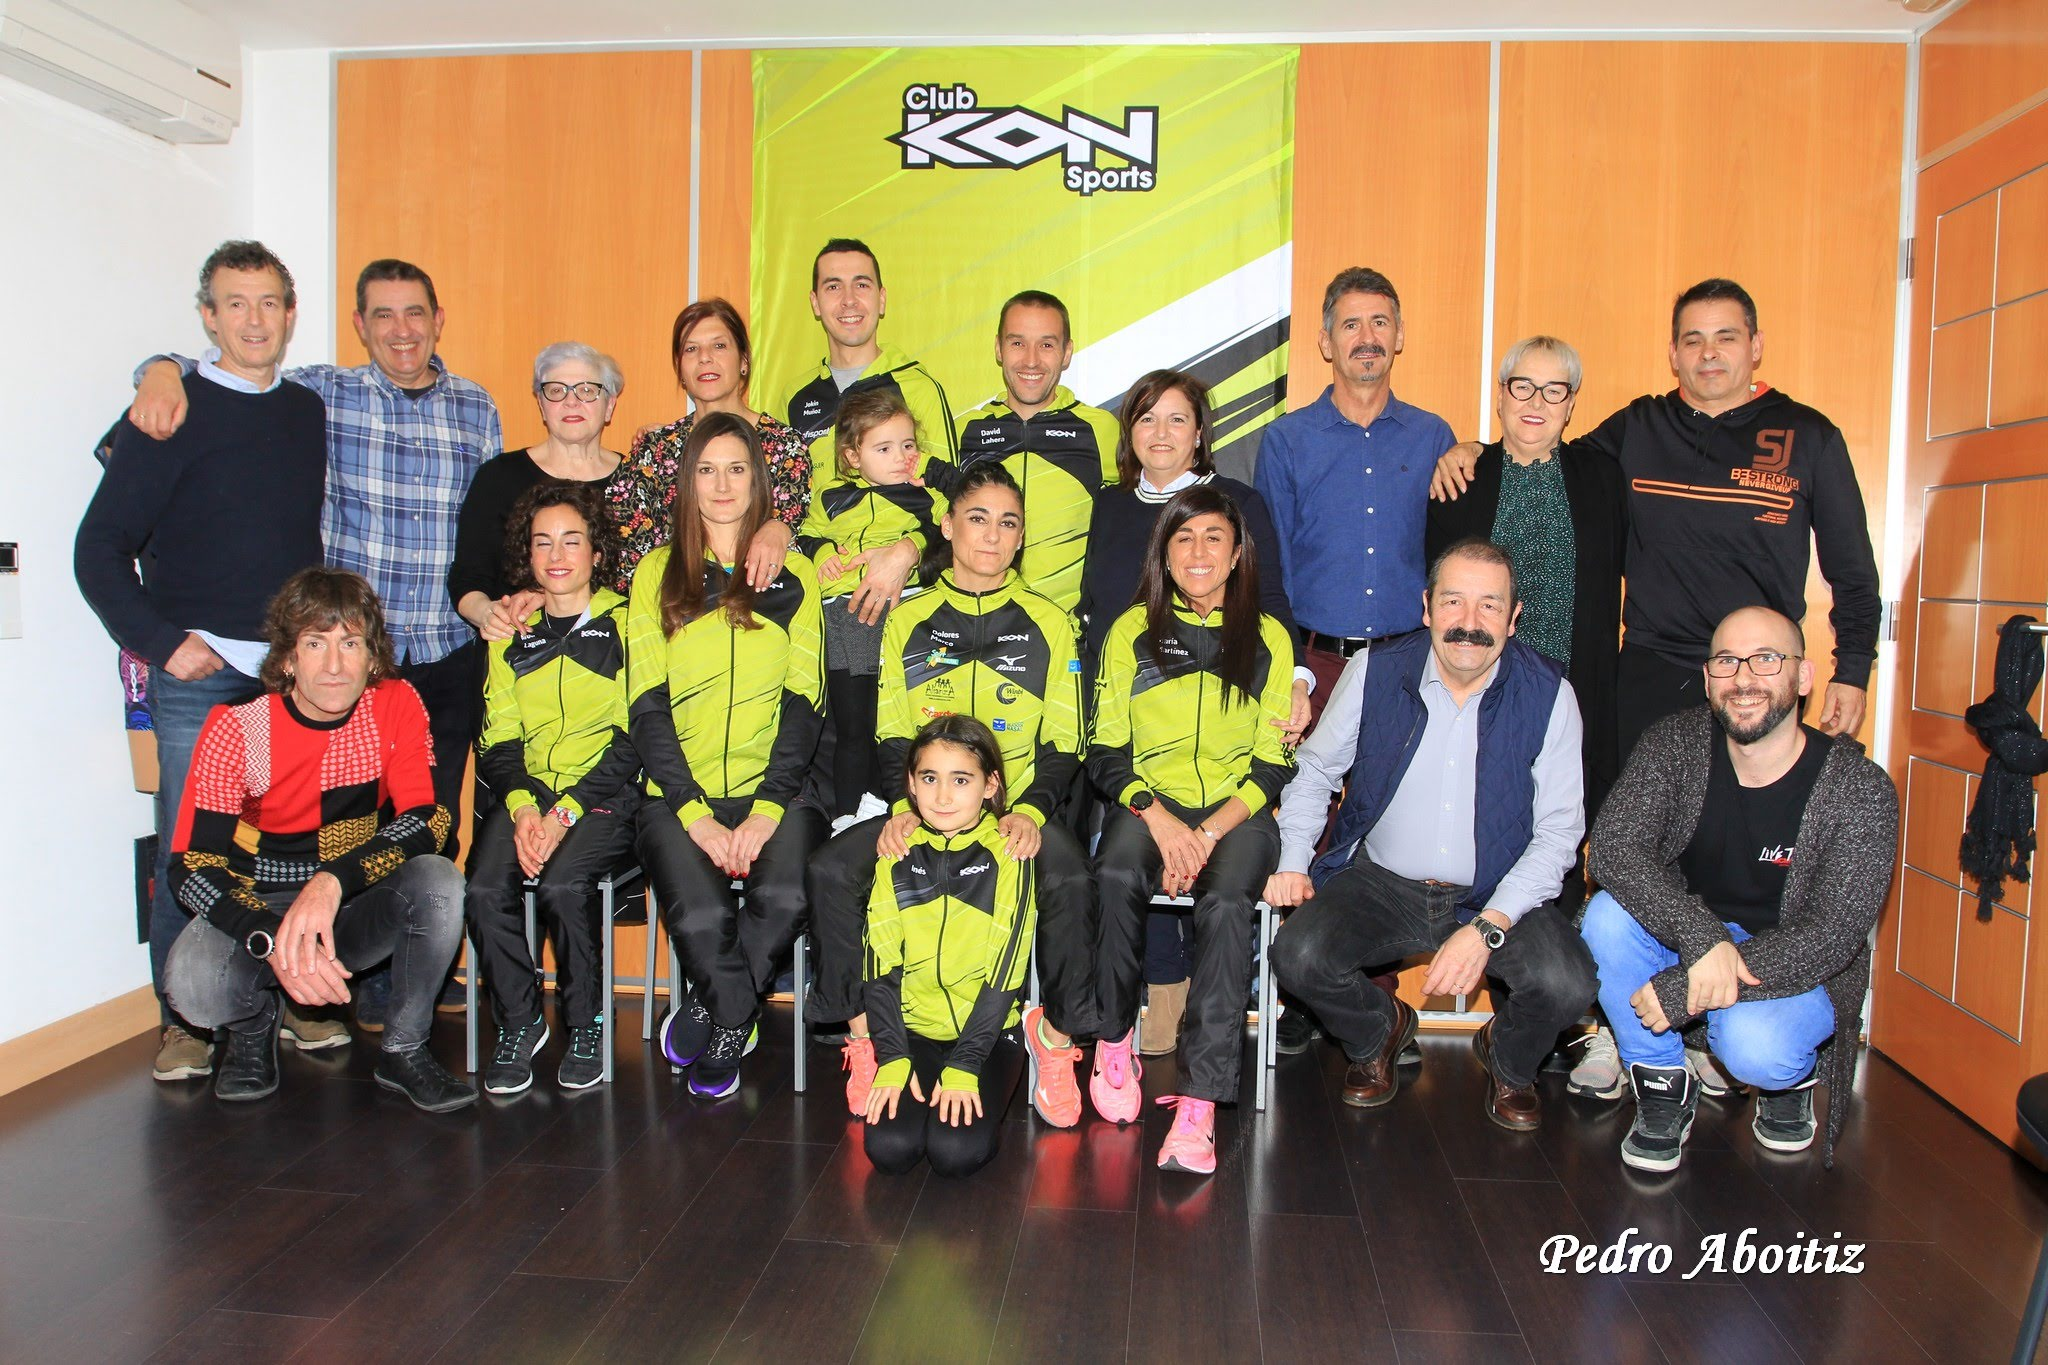 presentacion-club-atletismo-kon-sports-2020